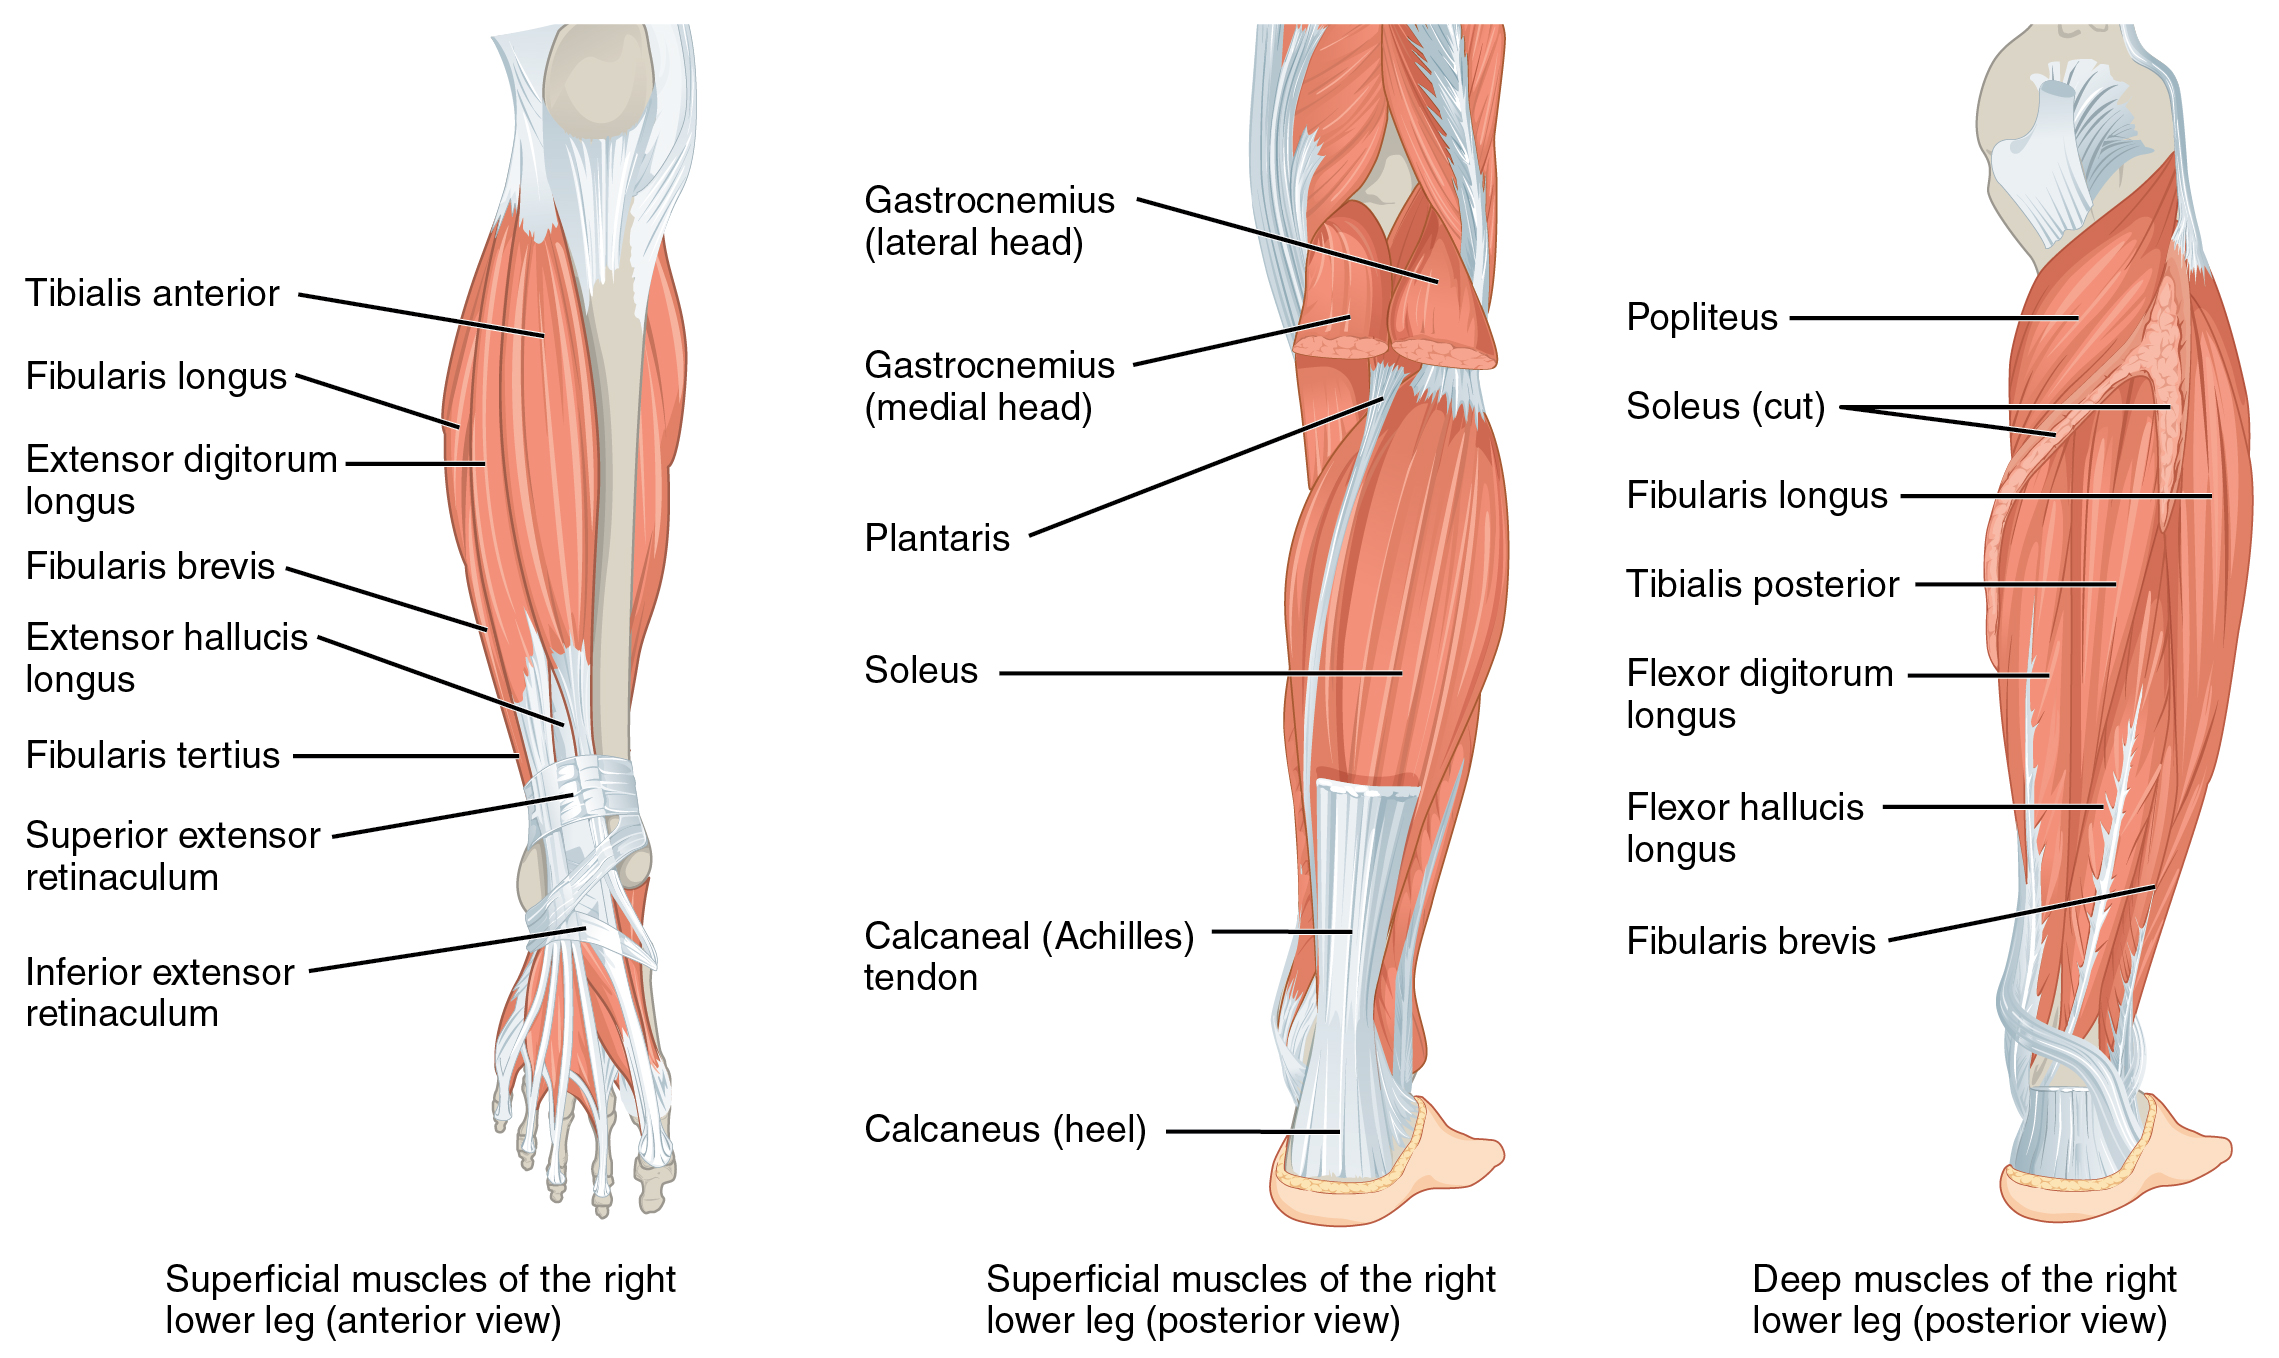 1123_Muscles_of_the_Leg_that_Move_the_Foot_and_Toes.jpg